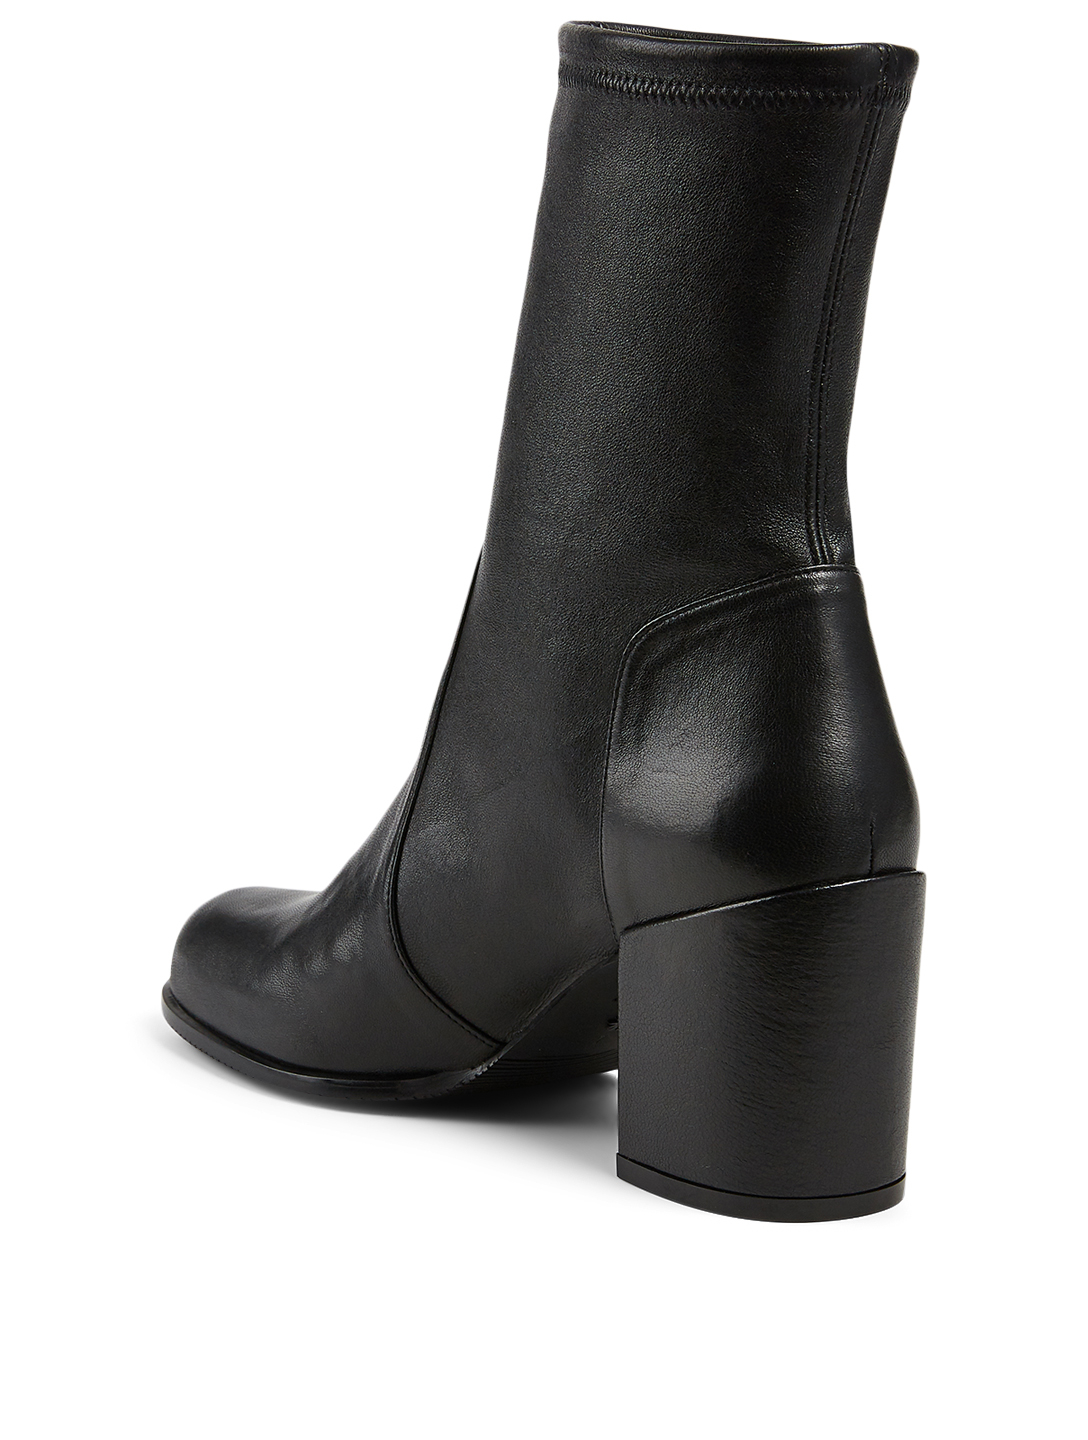 STUART WEITZMAN Tieland Stretch Leather Heeled Ankle Boots Women's Black